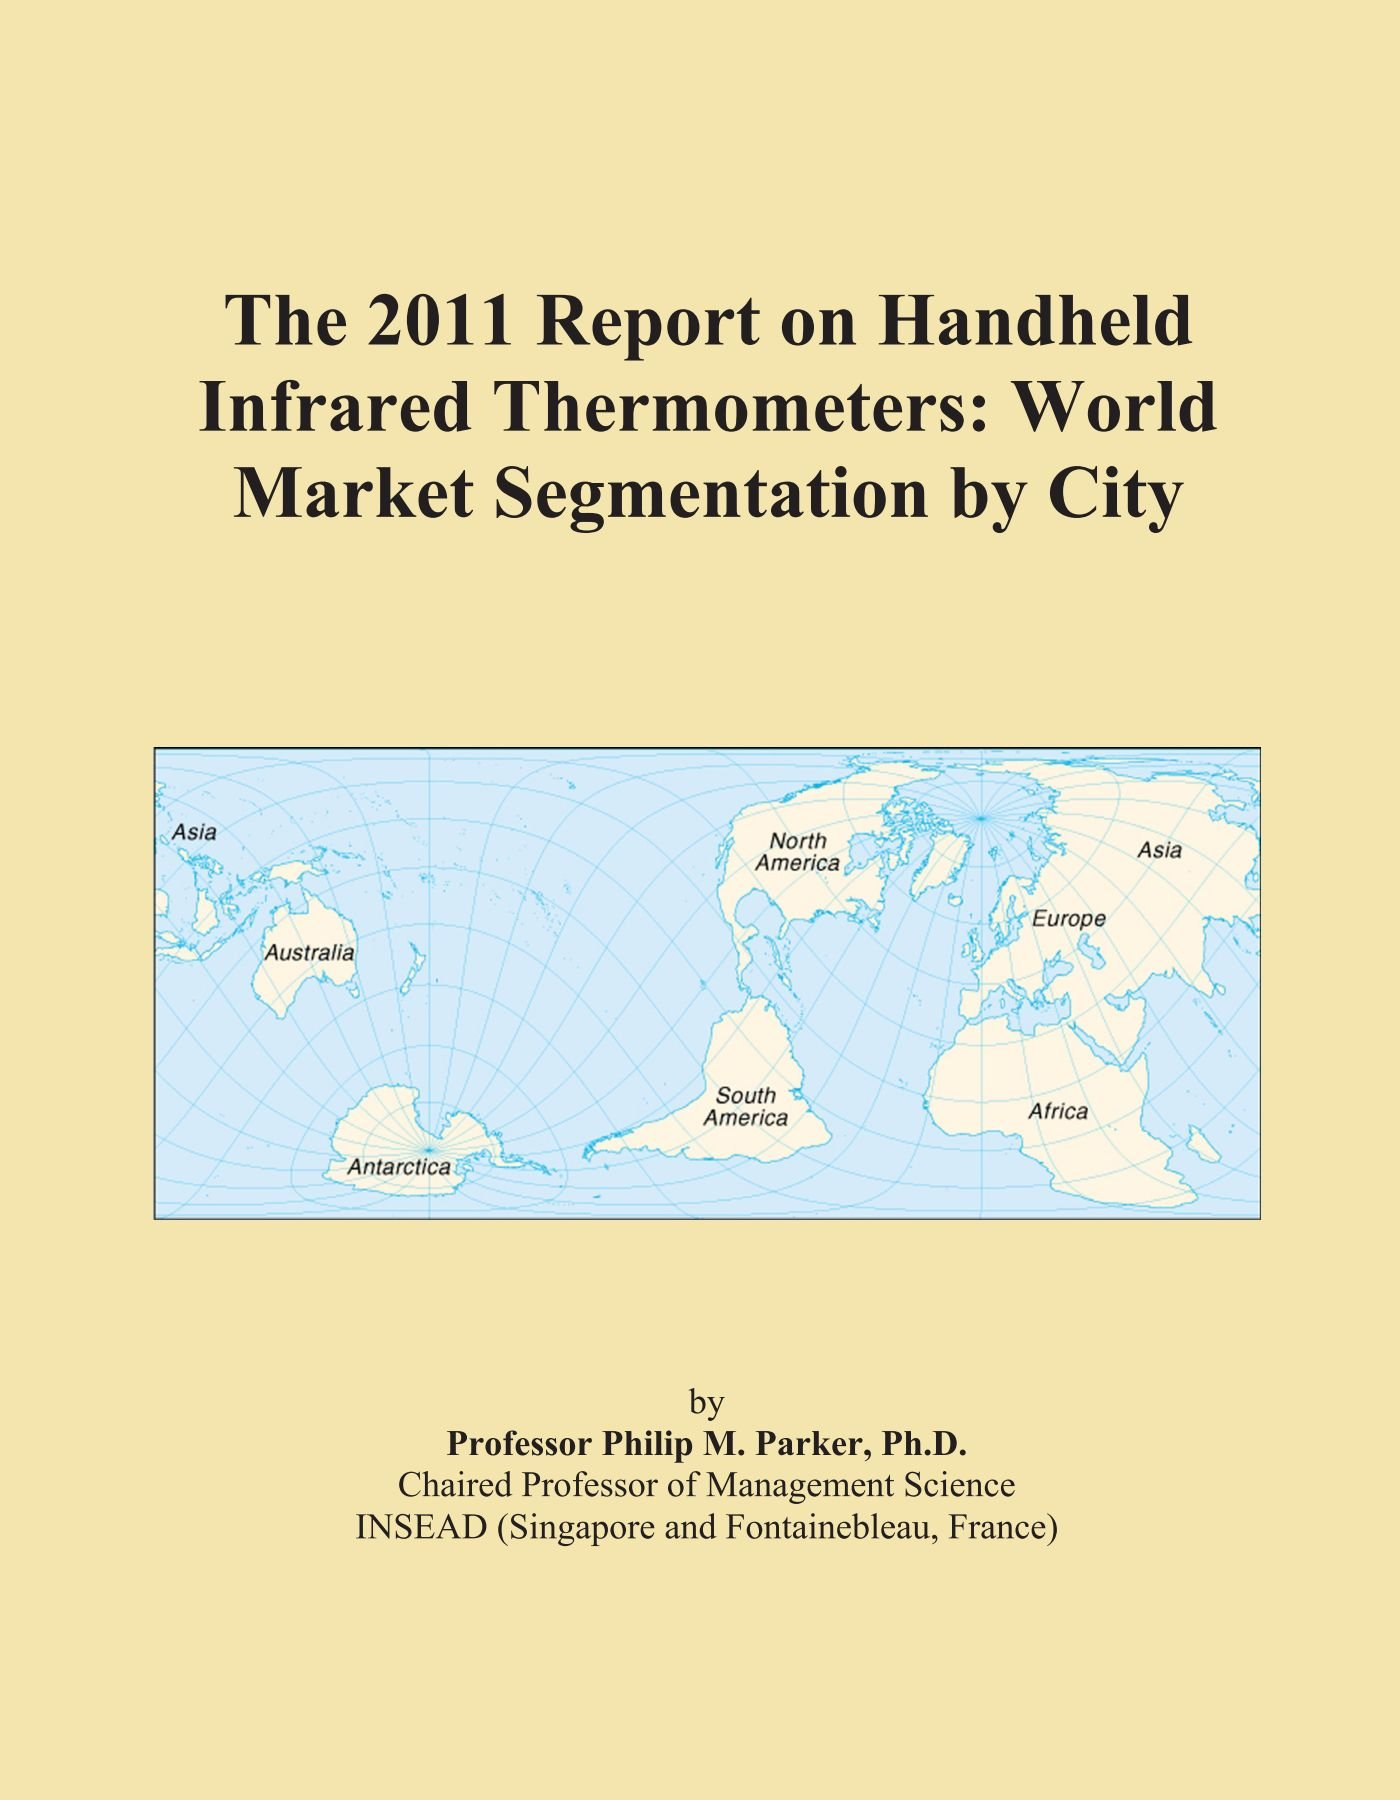 The 2011 Report on Handheld Infrared